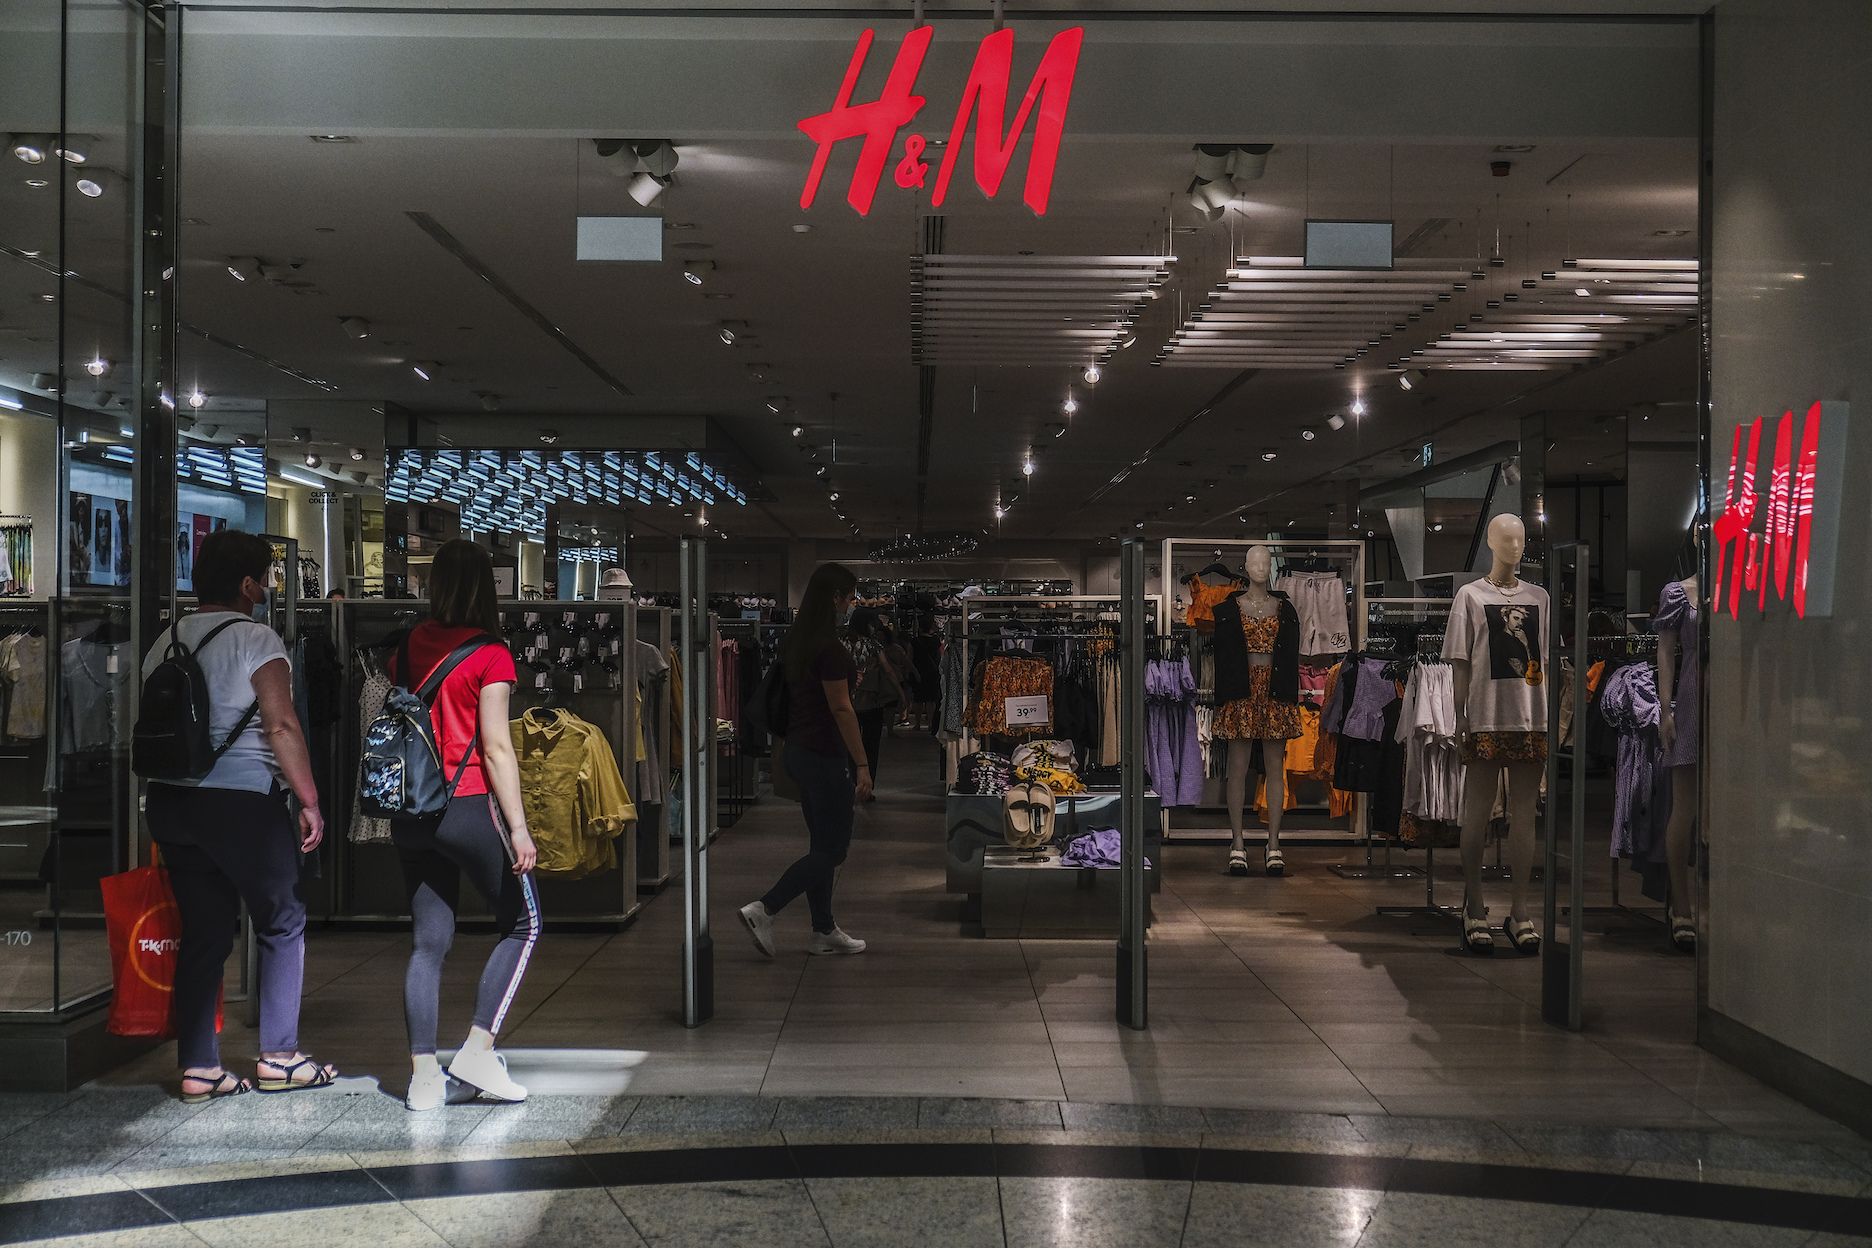 Despite being hampered in major European markets due to H&M Group saw net sales grow 75 percent in local currencies in its second quarter to 46.5 billion Swedish kronor ($5.59 billion), up from 28.6 billion kronor (then $3.06 billion) in the year-ago period; or 62 percent on a constant-currency basis when accounting for the strengthening of the kronor.